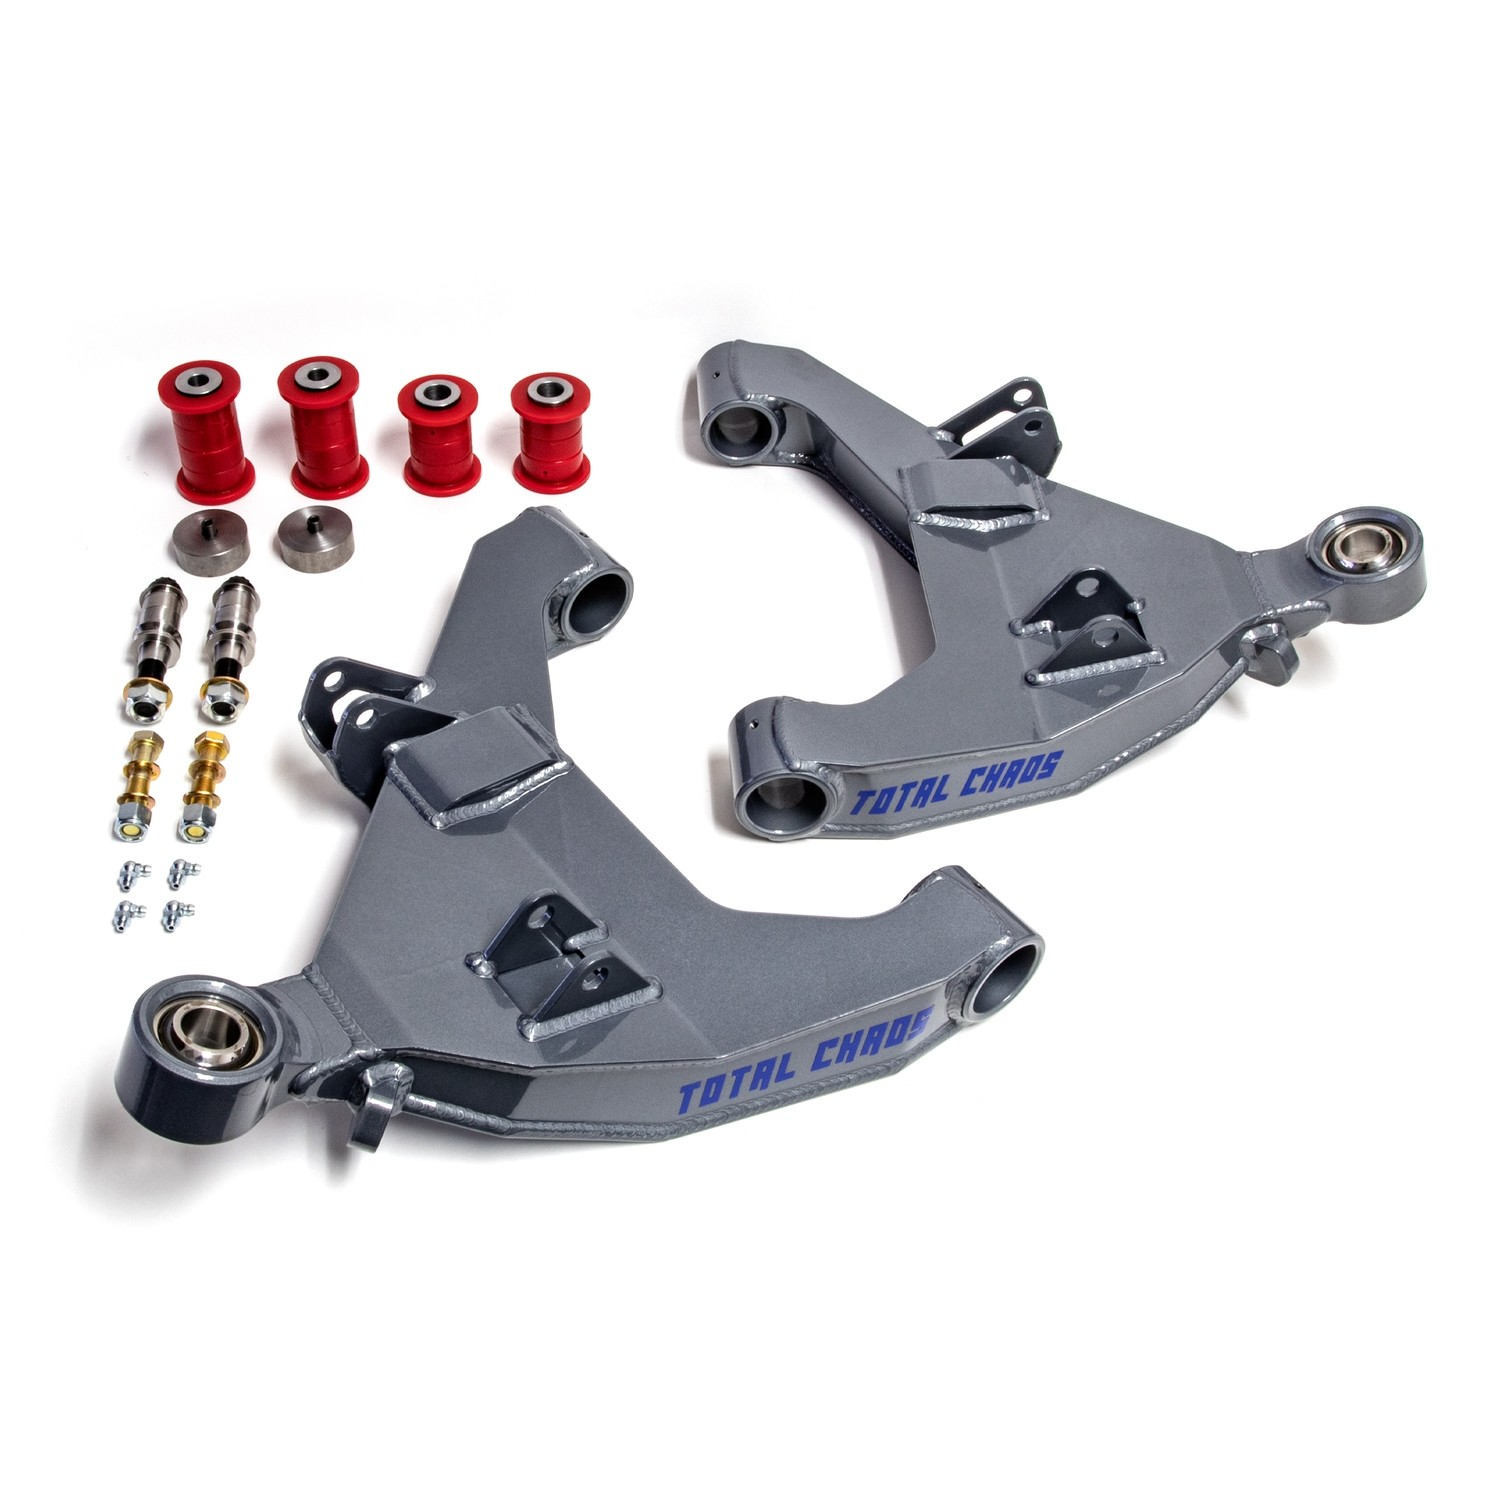 Total Chaos - STOCK LENGTH 4130 EXPEDITION SERIES LOWER CONTROL ARMS